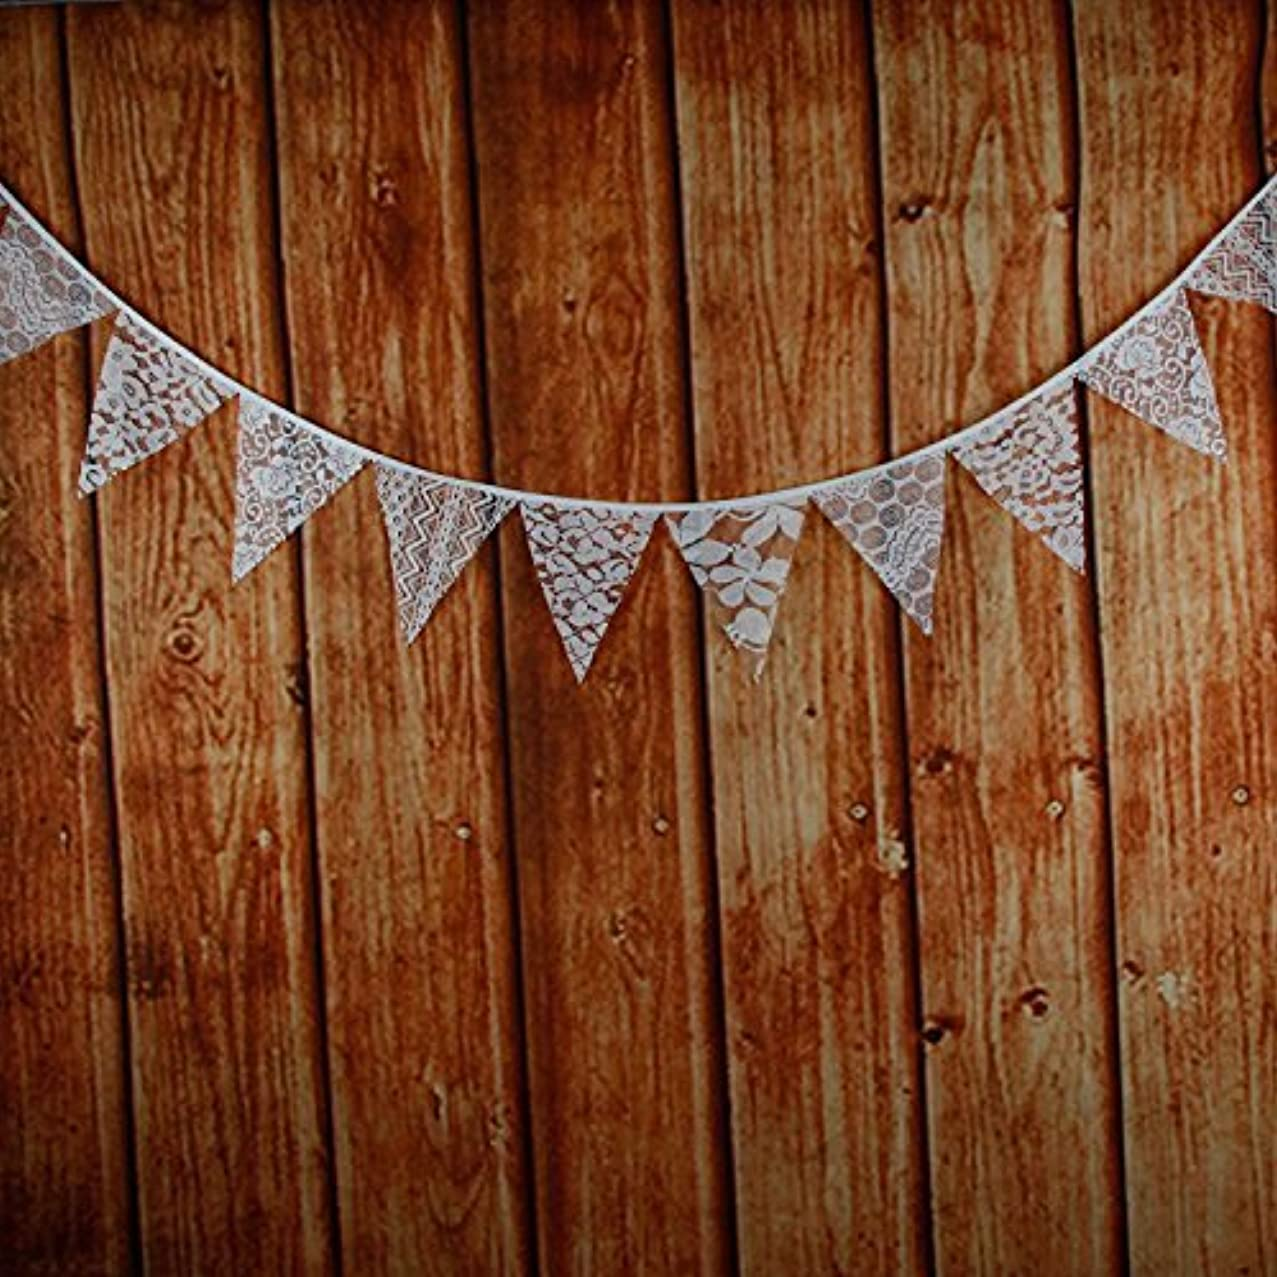 White Lace Wedding Hessian Bunting Burlap Banner Rustic Party Decor House